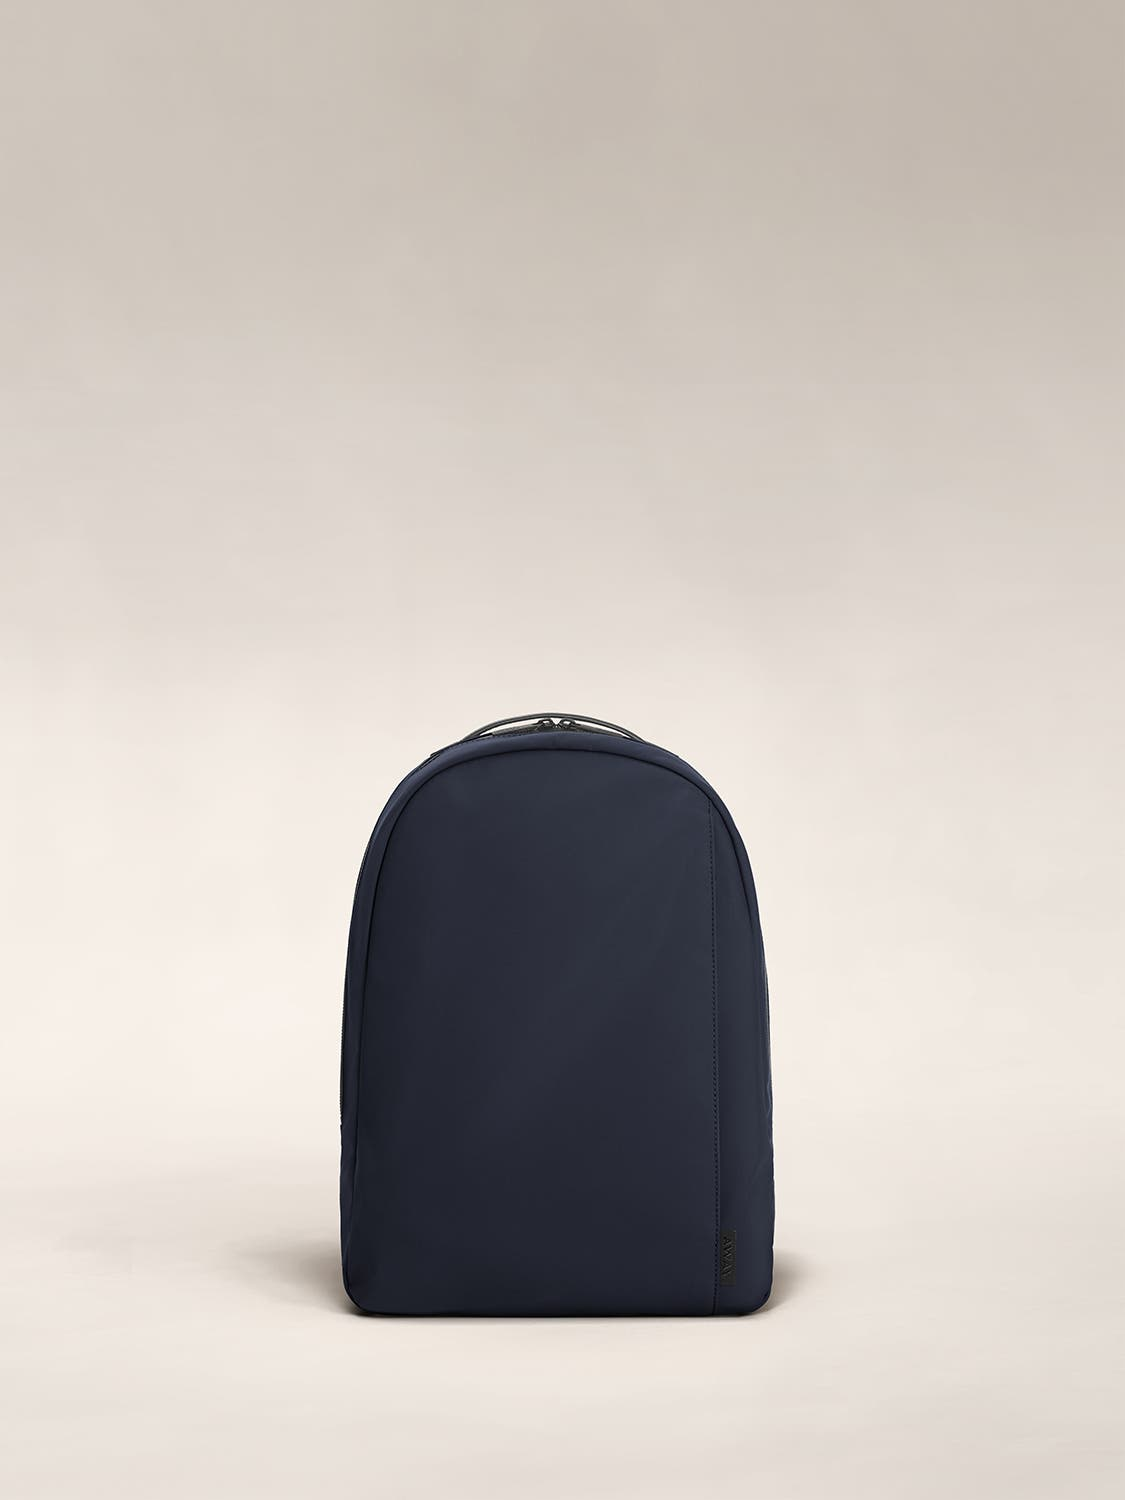 Front view of a navy small backpack.